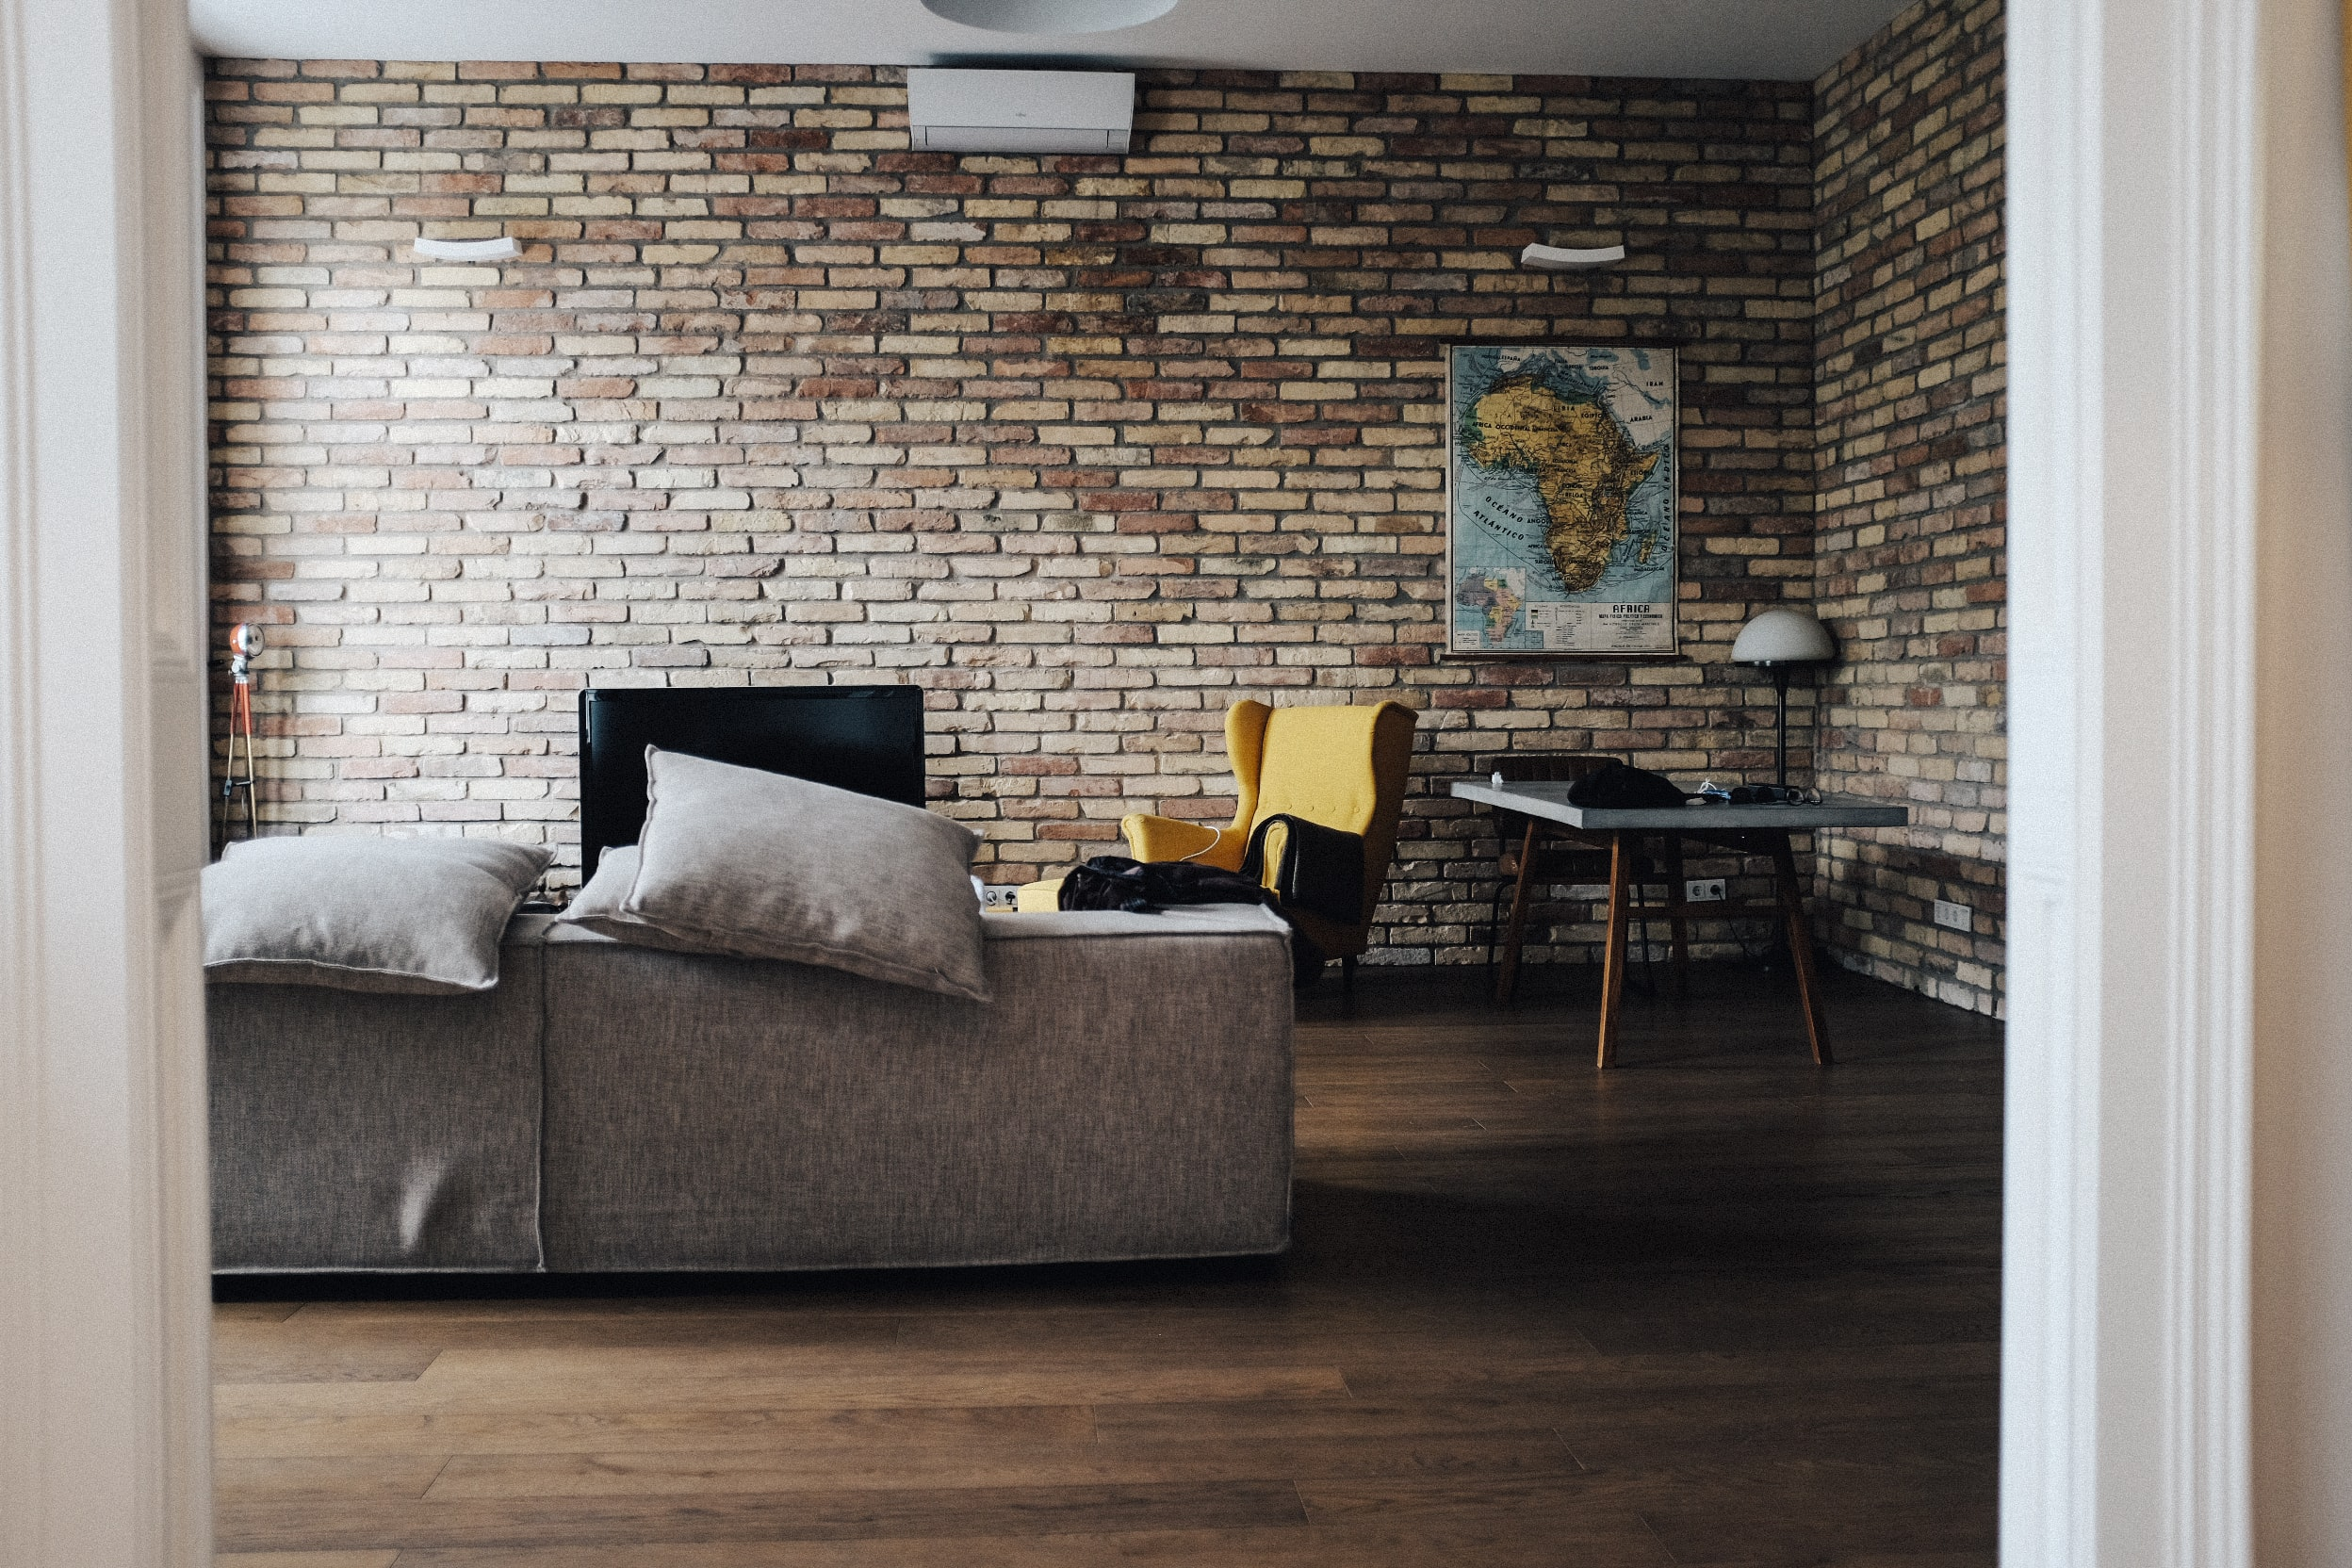 A living room with a sofa, a television, an armchair and a map on the brick wall